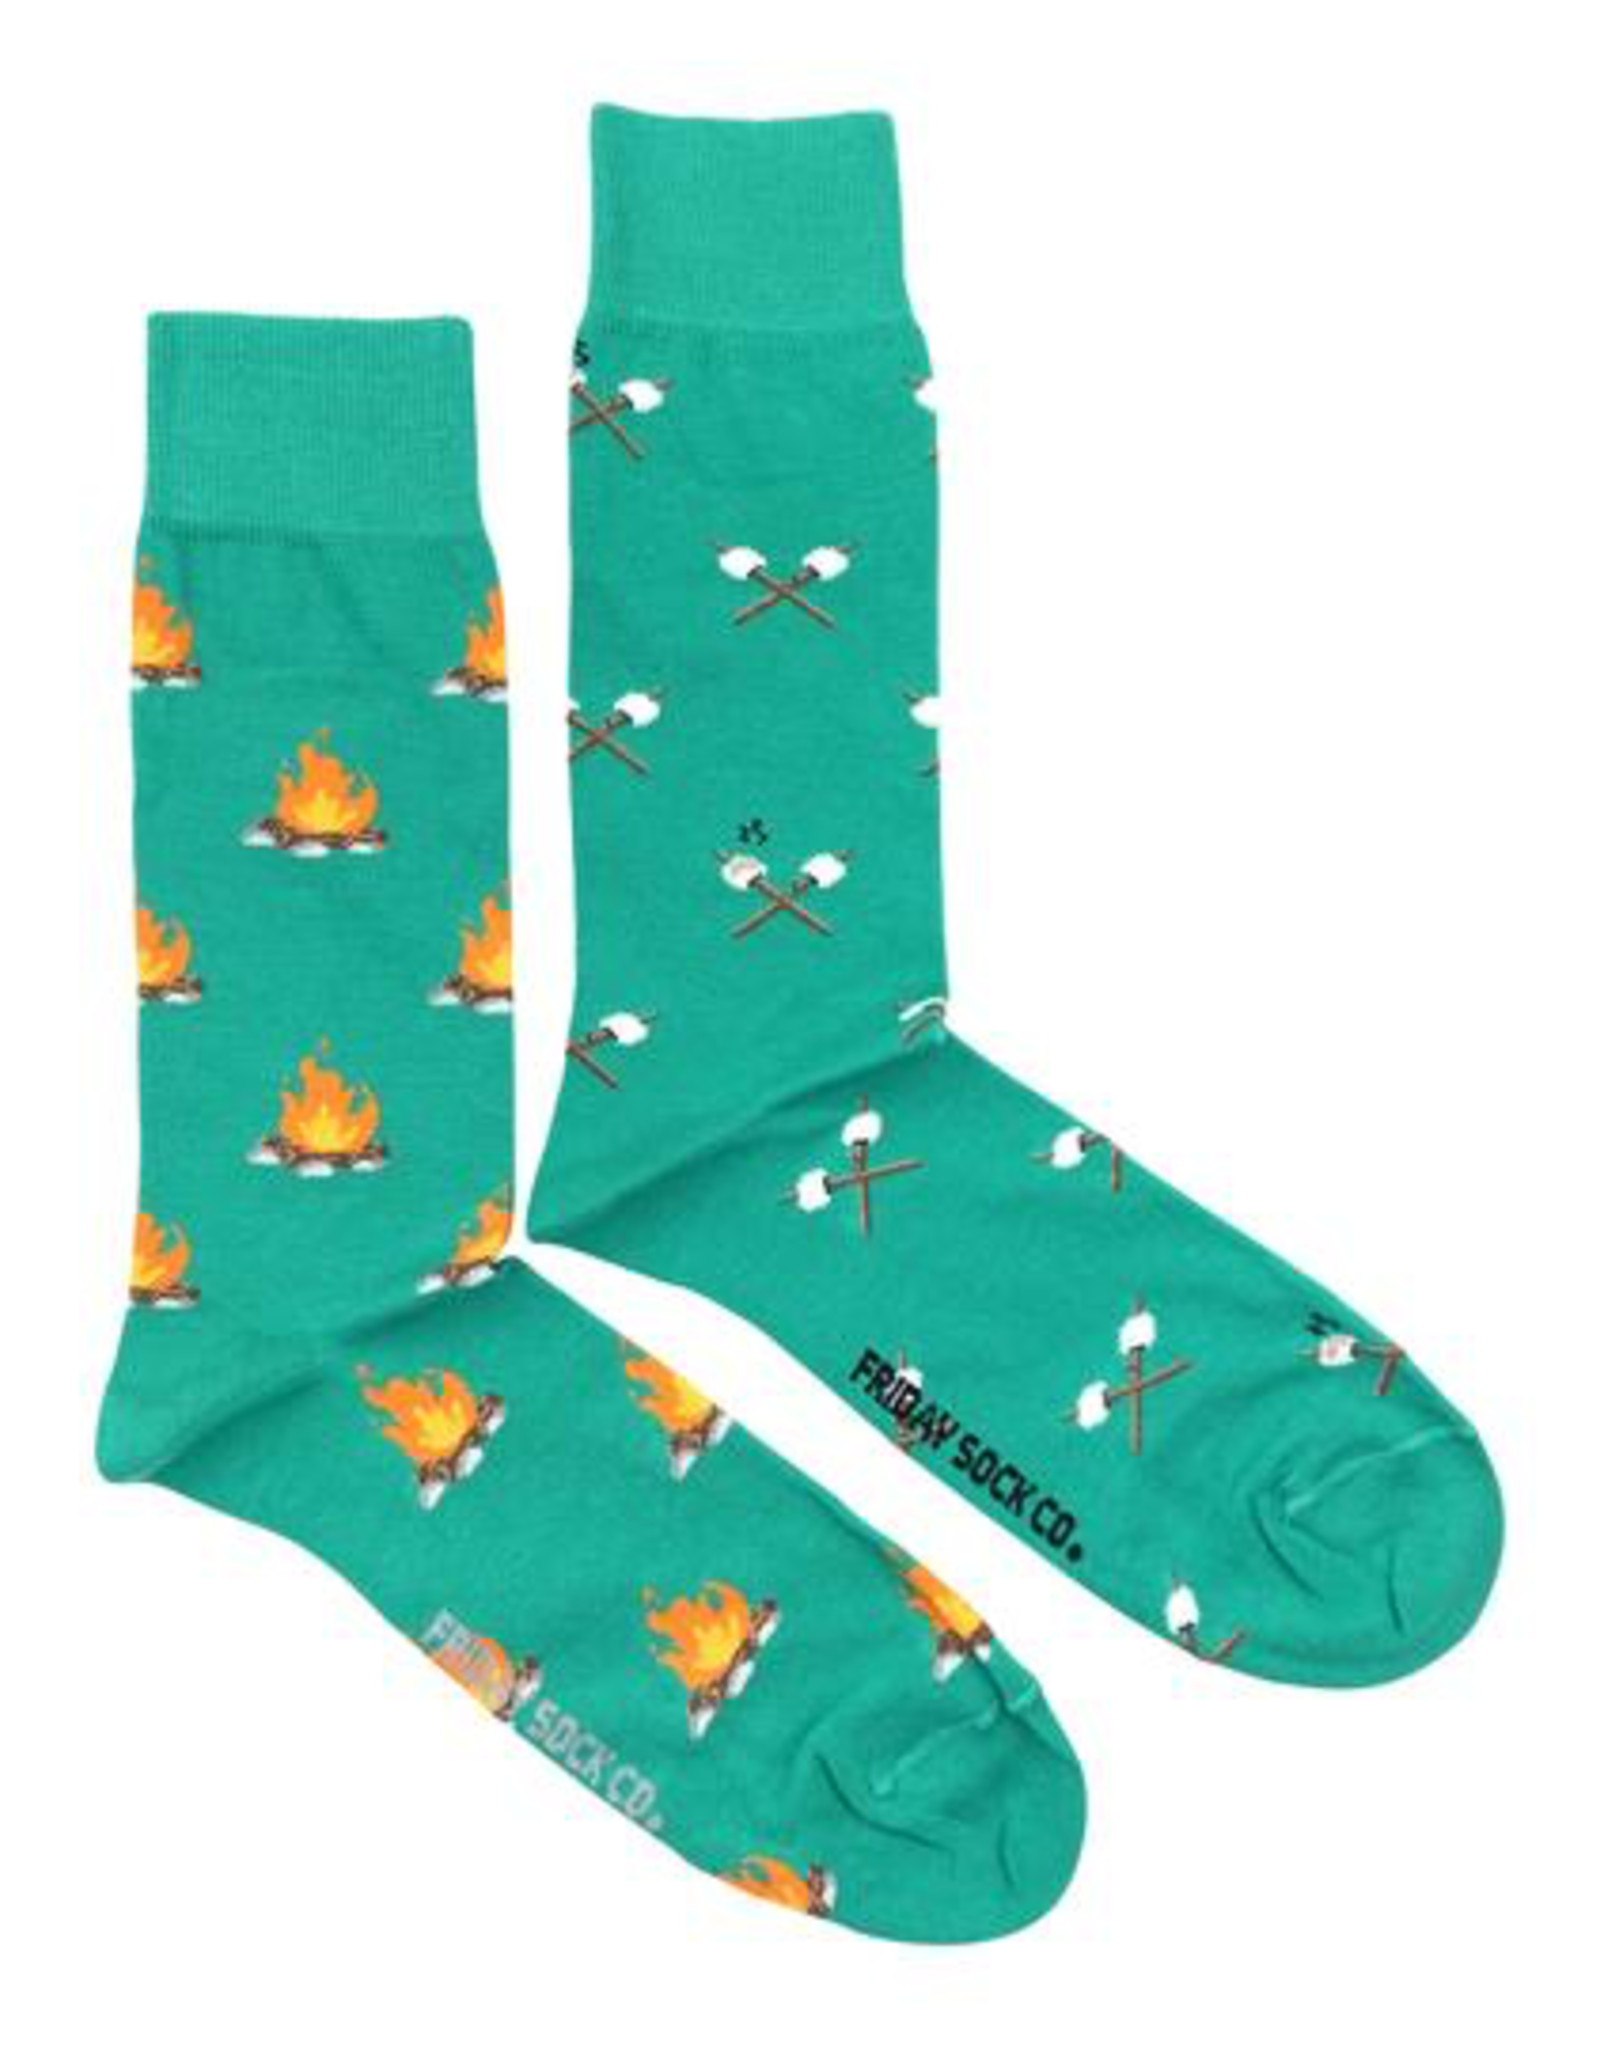 Friday Sock Co Friday Sock Co Campfire And Marshmallow Socks